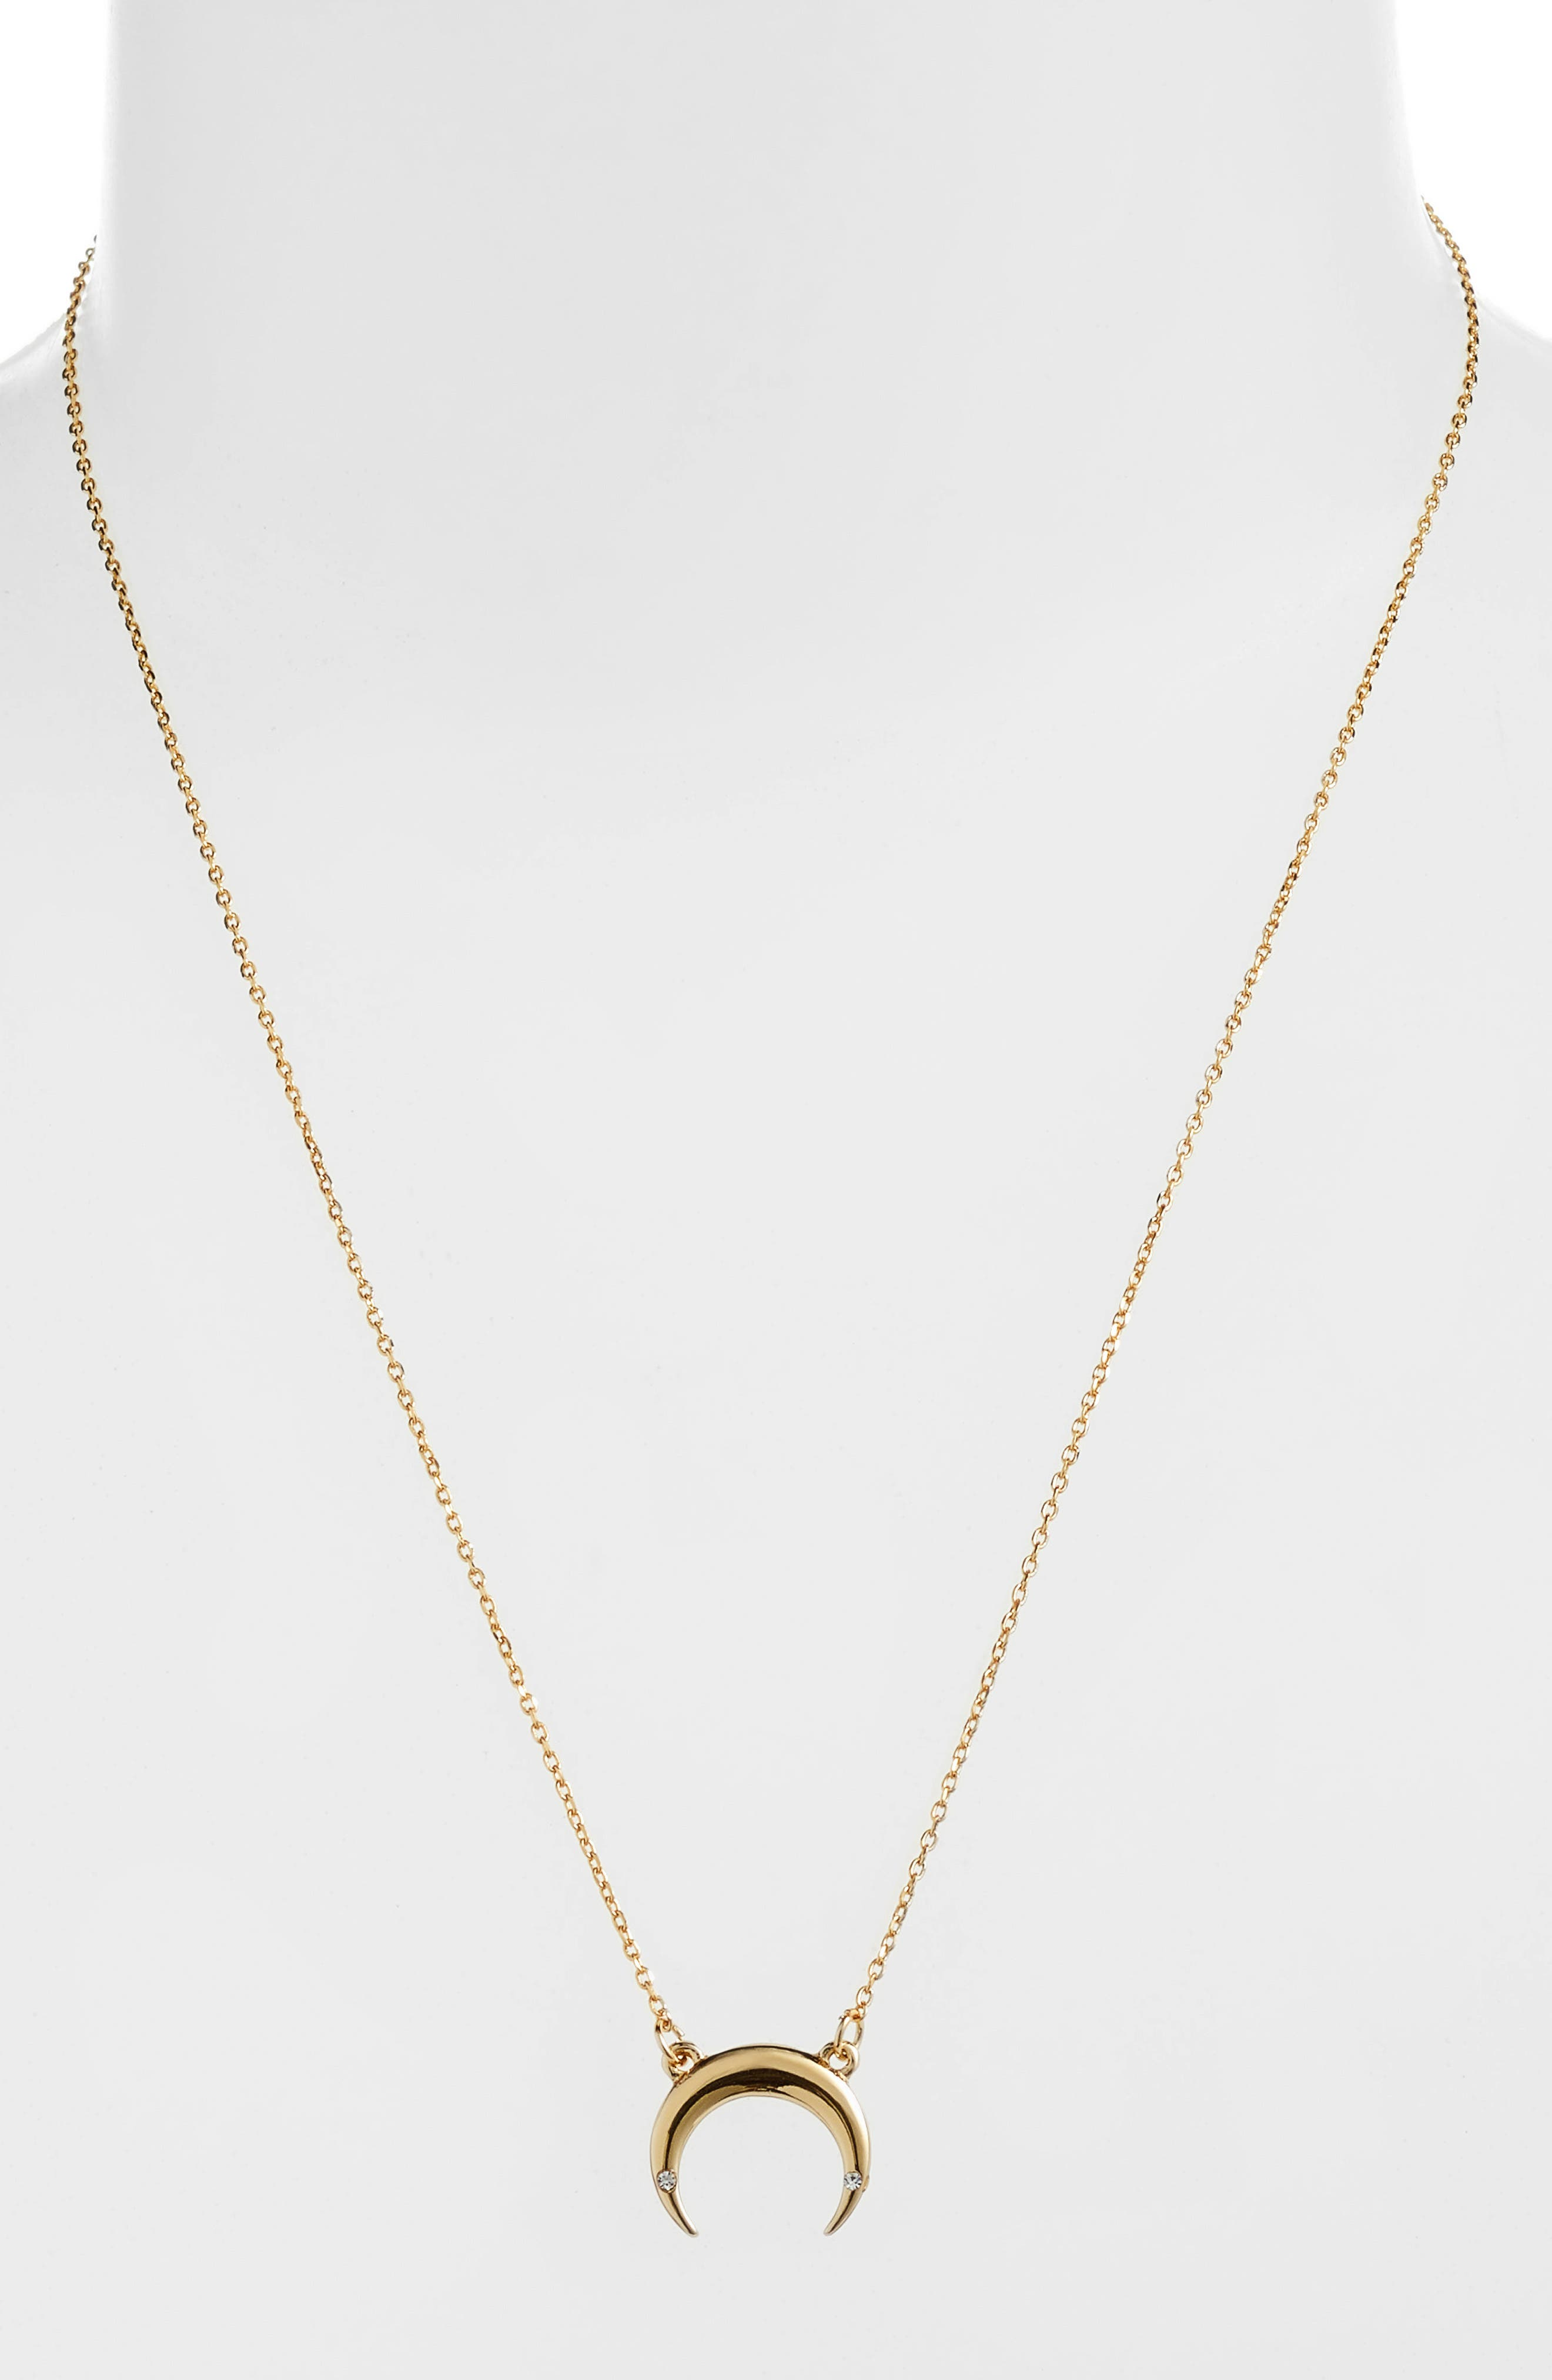 UNCOMMON JAMES BY KRISTIN CAVALLARI, Crescent Necklace, Alternate thumbnail 2, color, GOLD